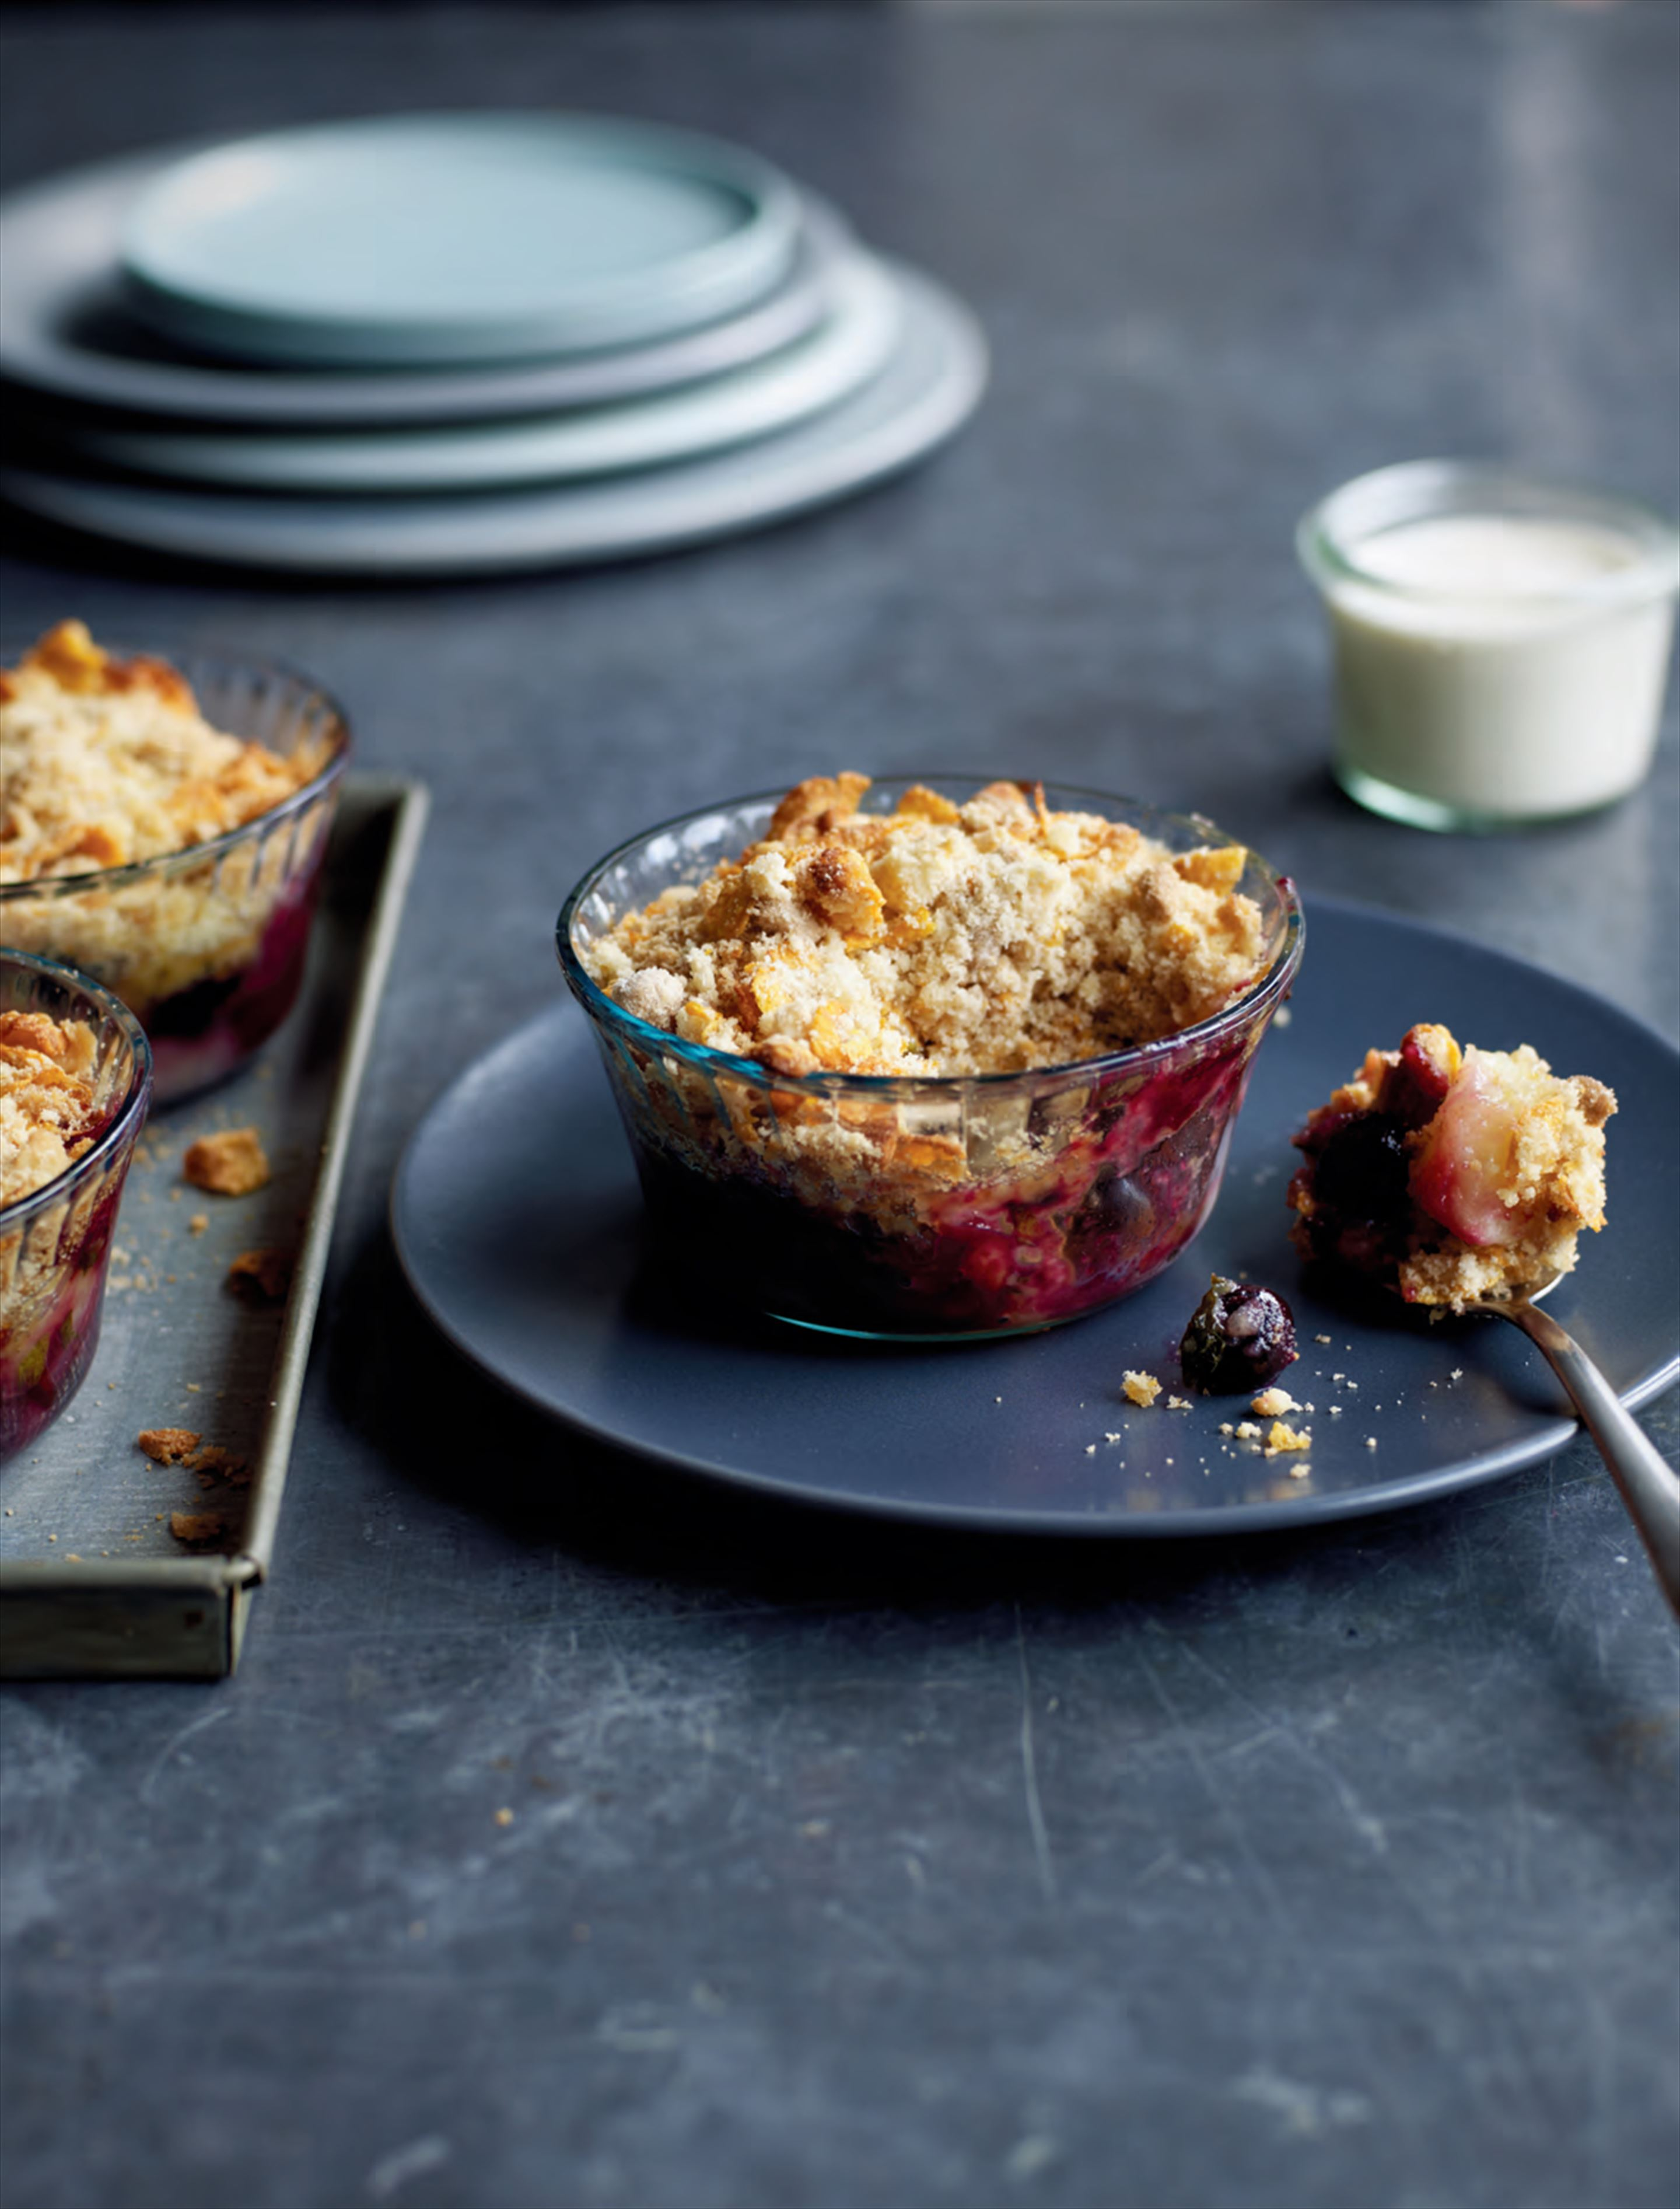 Blueberry, apple & mint crumble with cornflake crumb